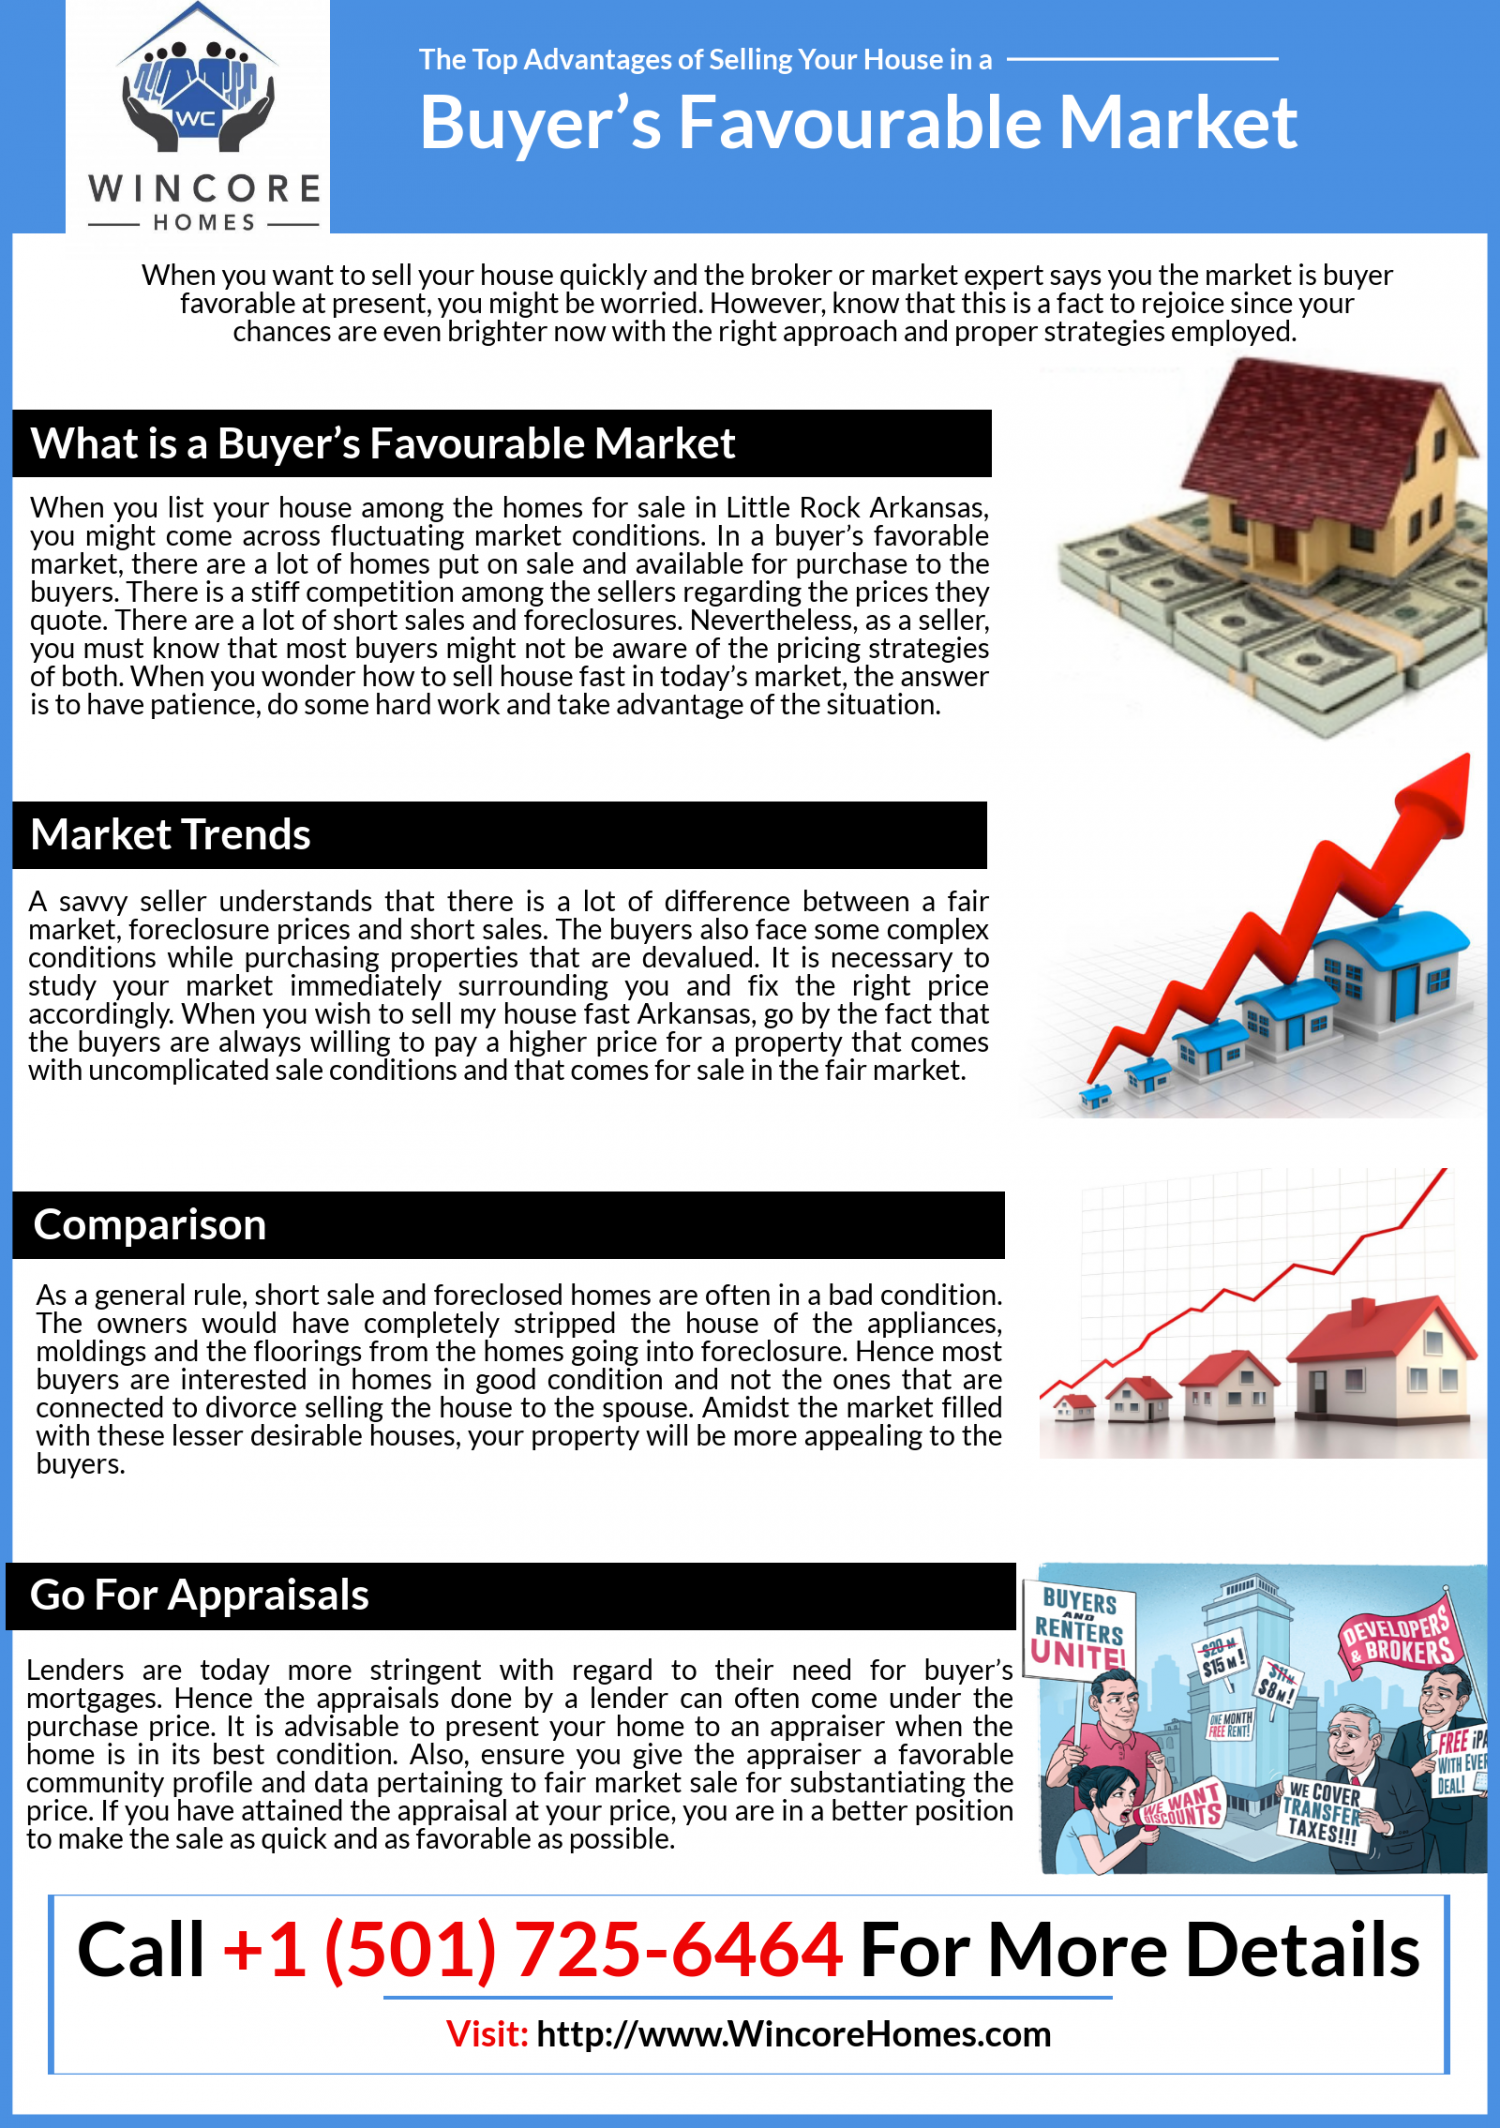 The Top Advantages of Selling Your House in a Buyer's Favourable Market - WinCoreHomes Infographic